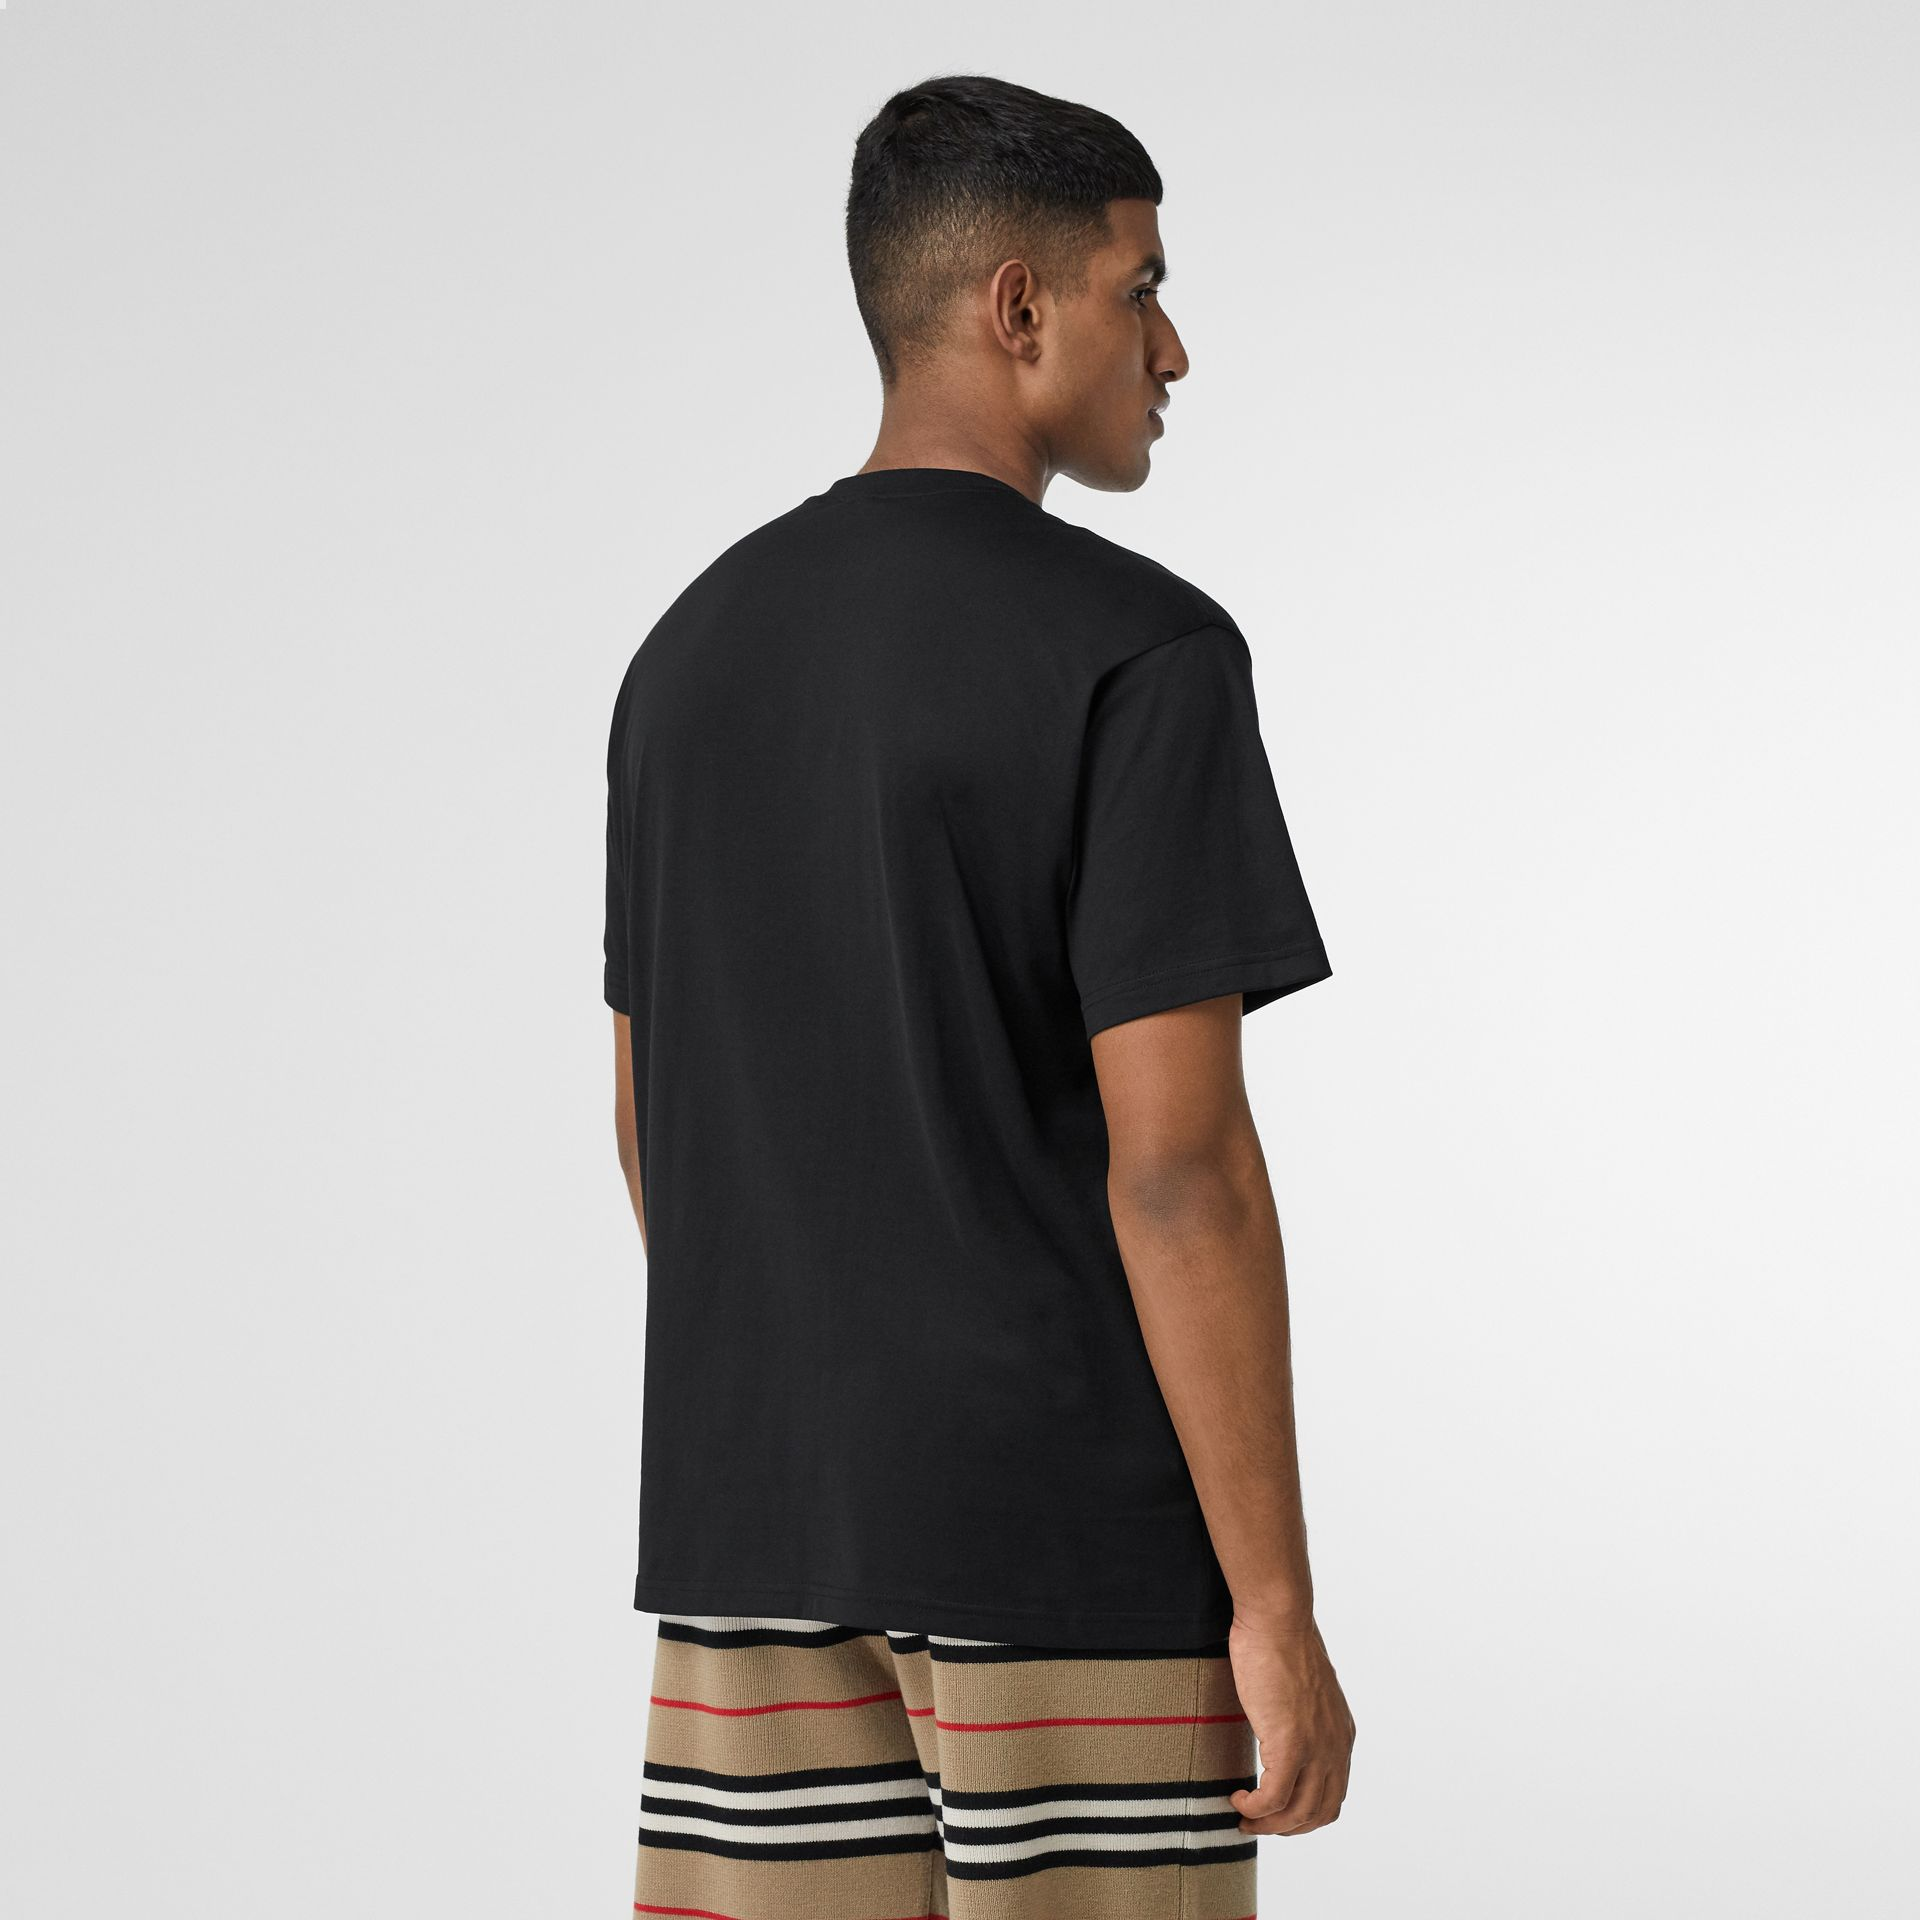 Monogram Motif Cotton Oversized T-shirt in Black - Men | Burberry - gallery image 2